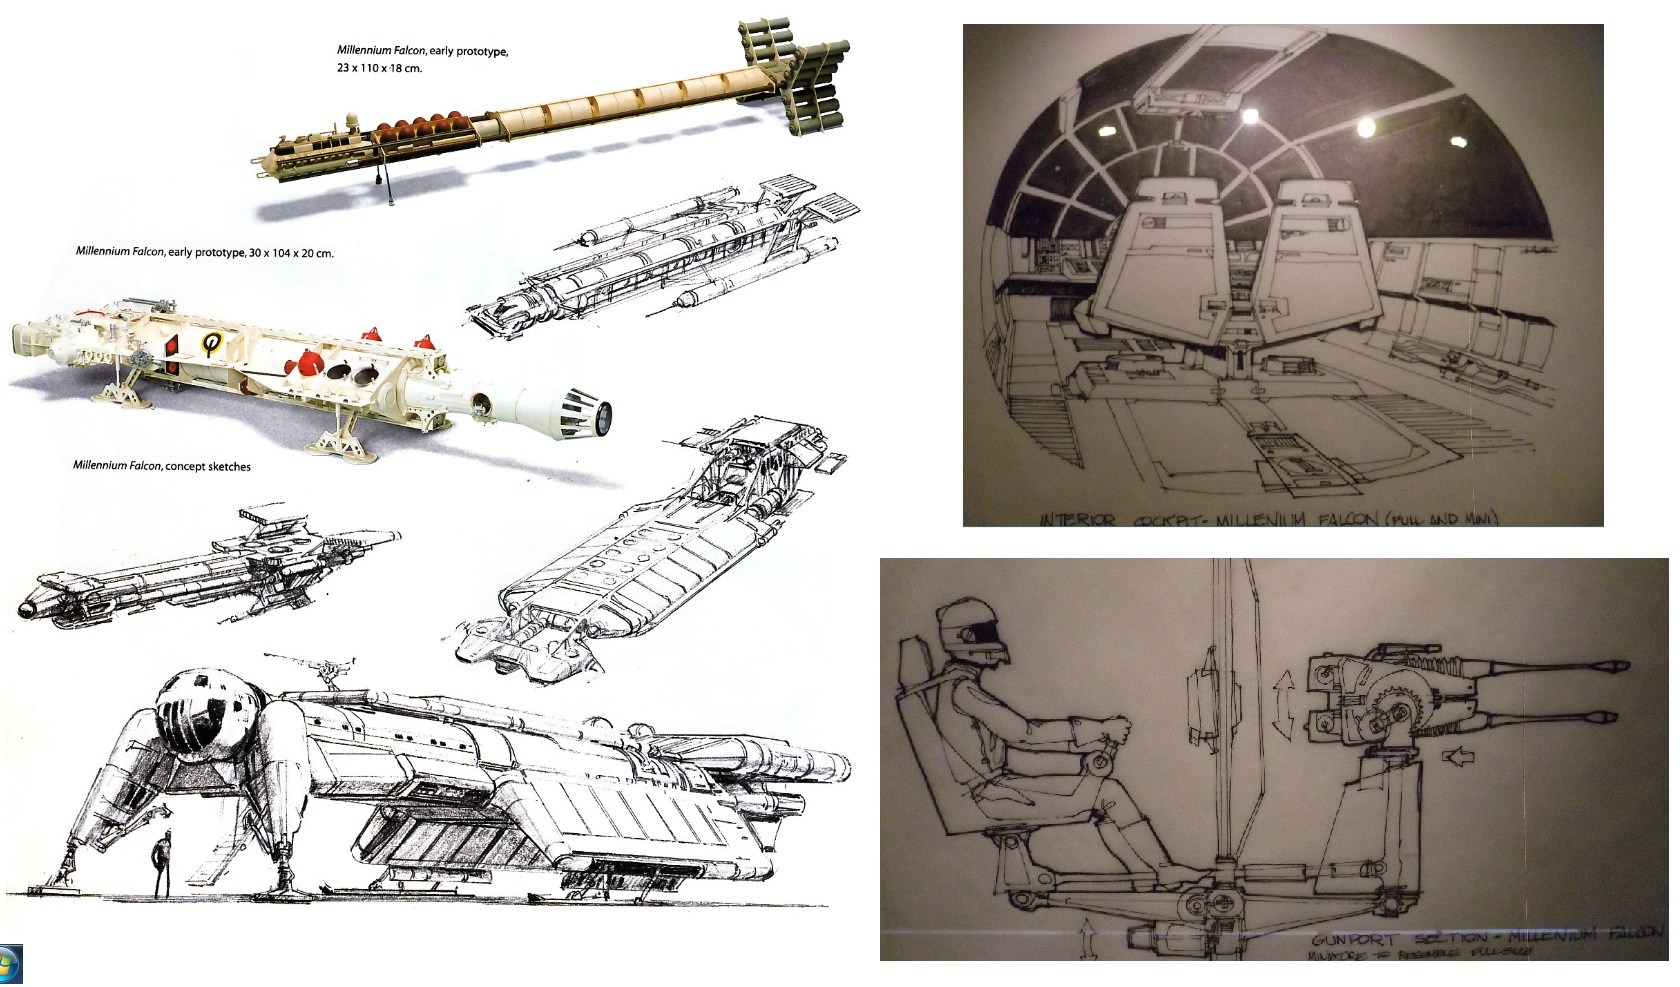 Image 01 10 Things You Didn't Know About Star Wars: Episode IV - A New Hope